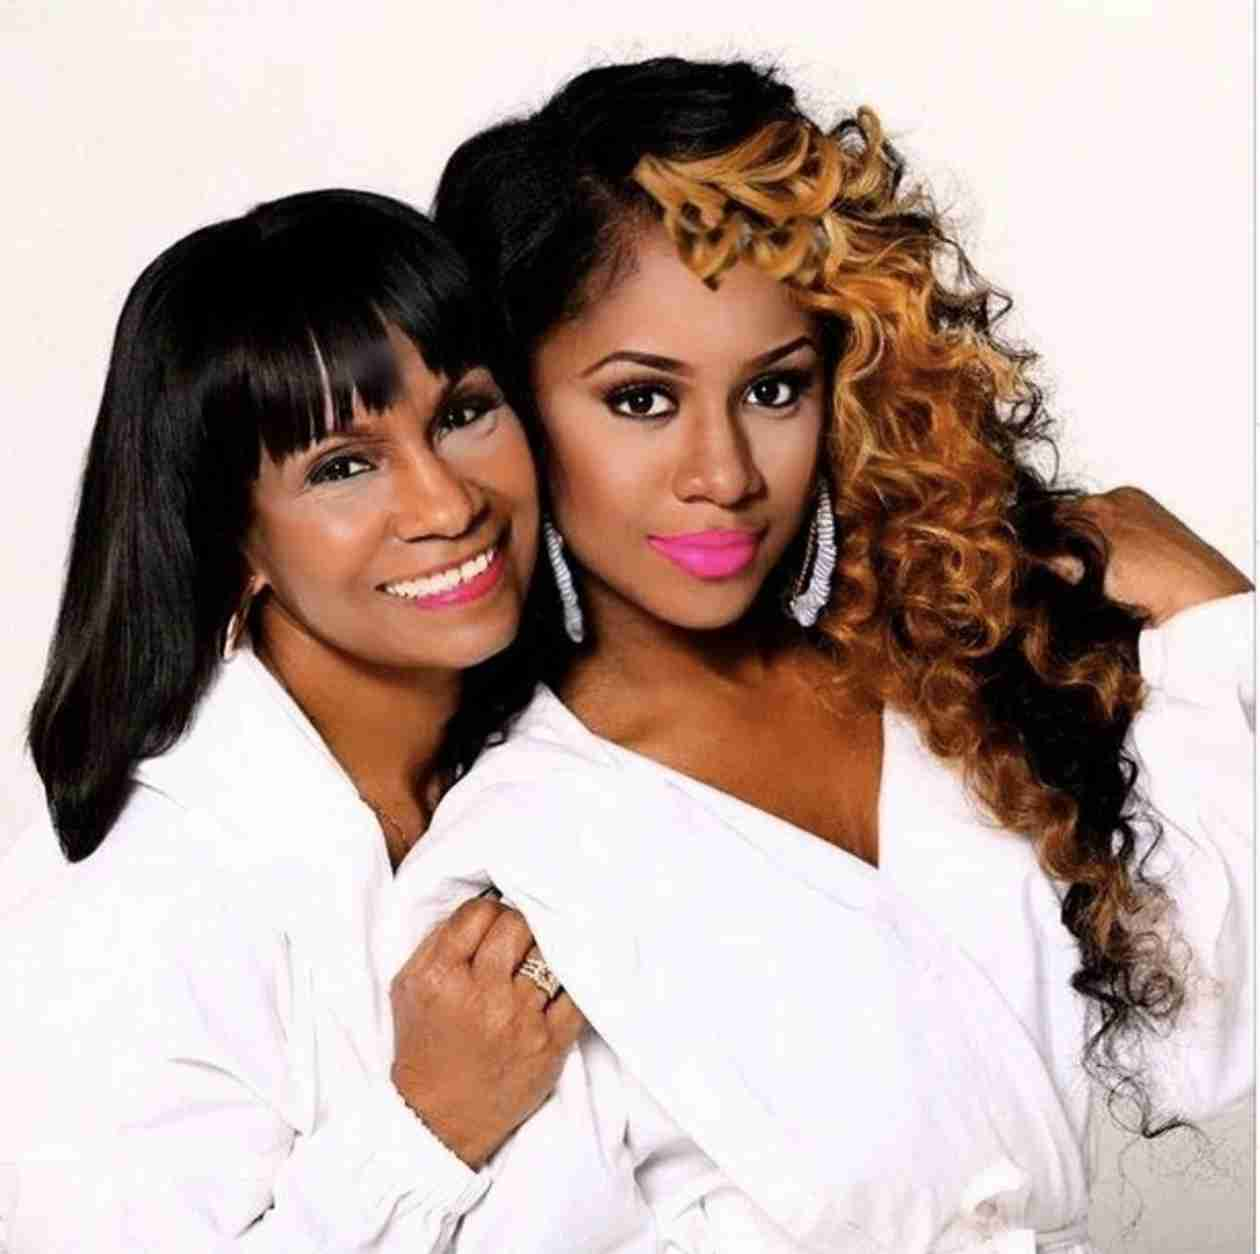 See Kandi Burruss' Mama Joyce in a Lip Gloss Photoshoot (PHOTO)